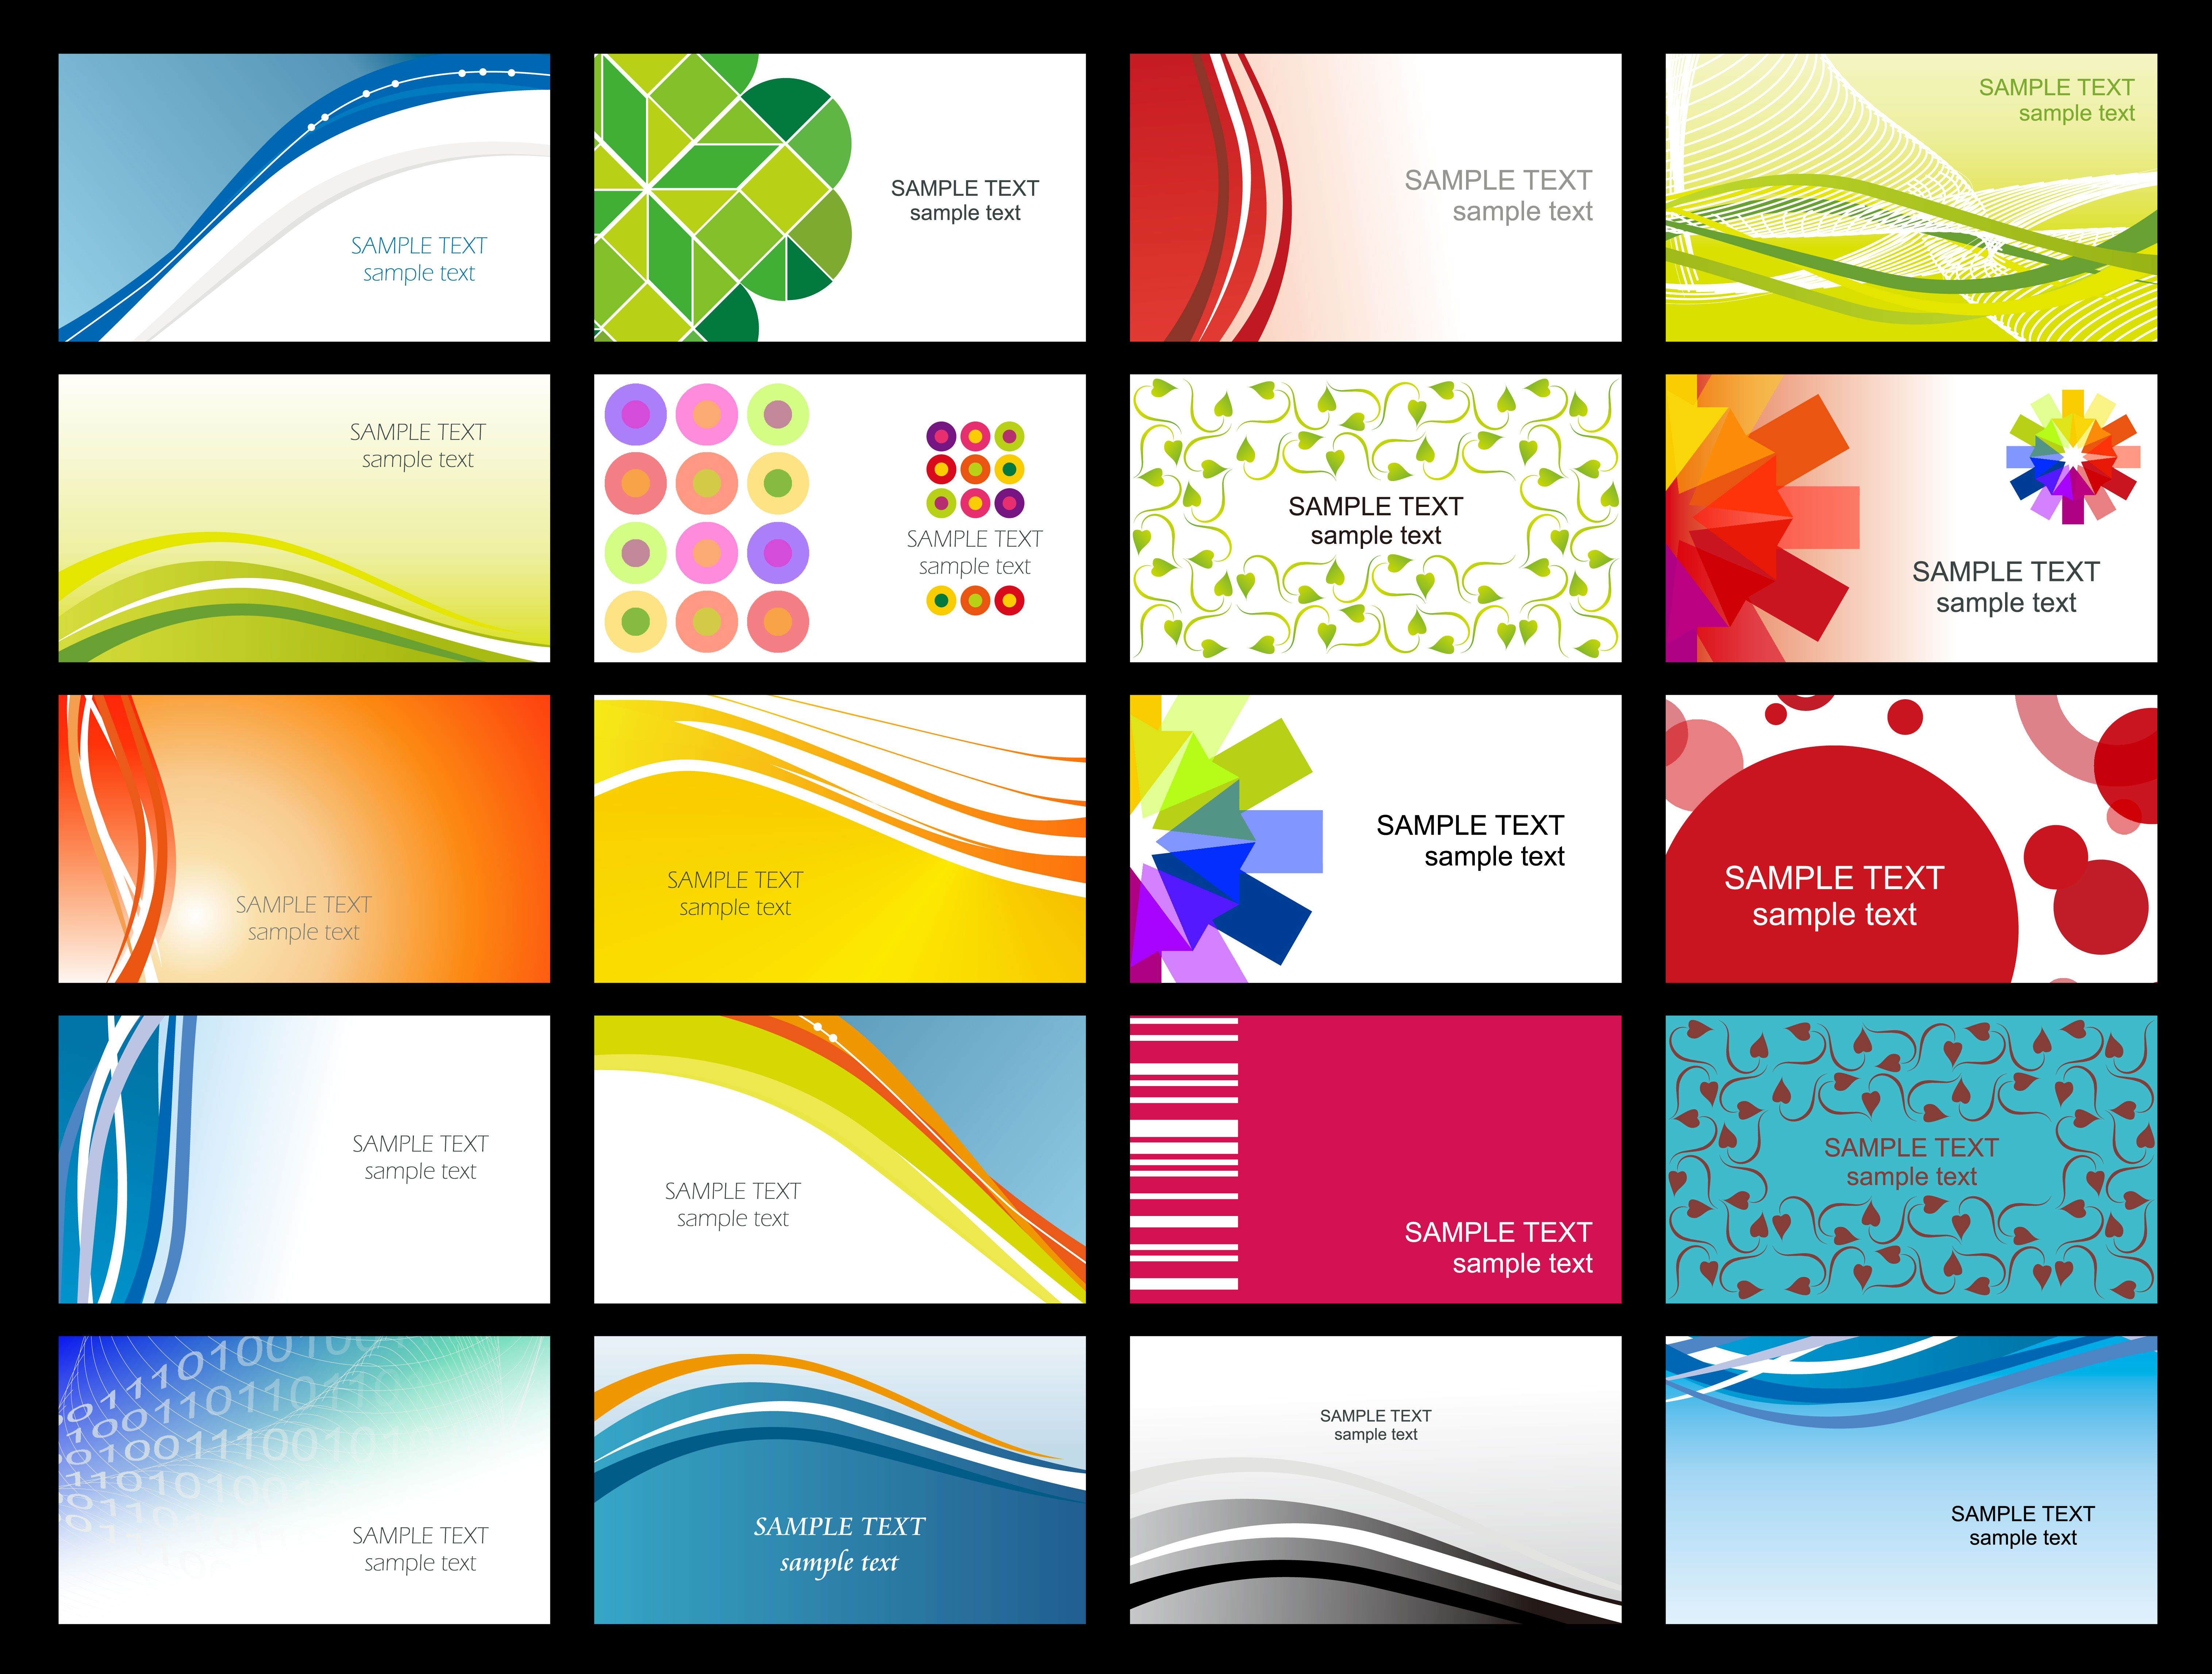 Variety Of Dynamic Flow Line Business Card Templates 02 Vector